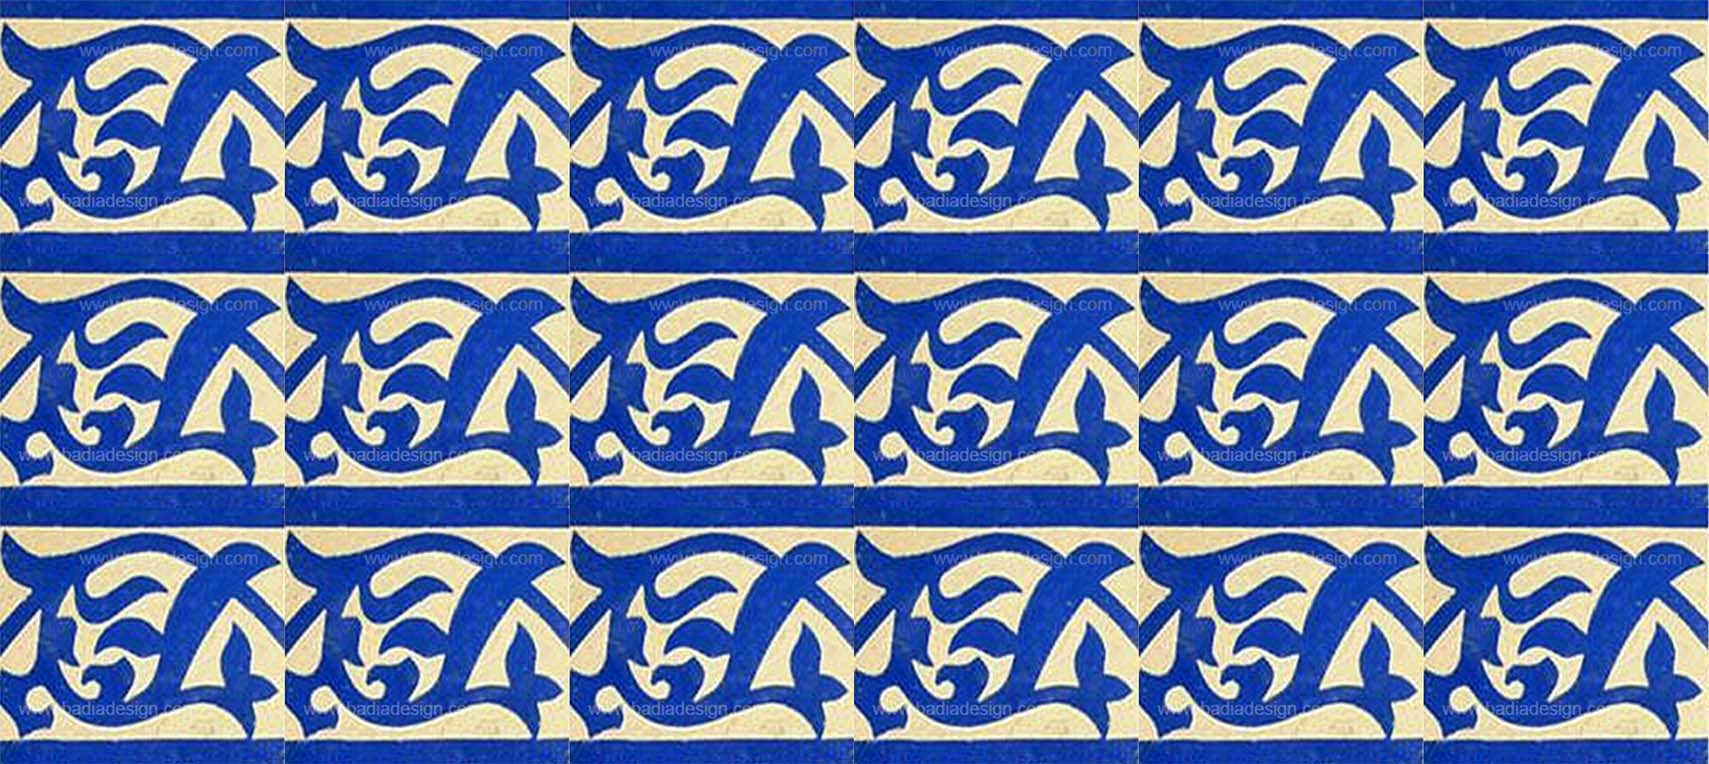 moroccan-hand-chiseled-tile-cht021-2.jpg